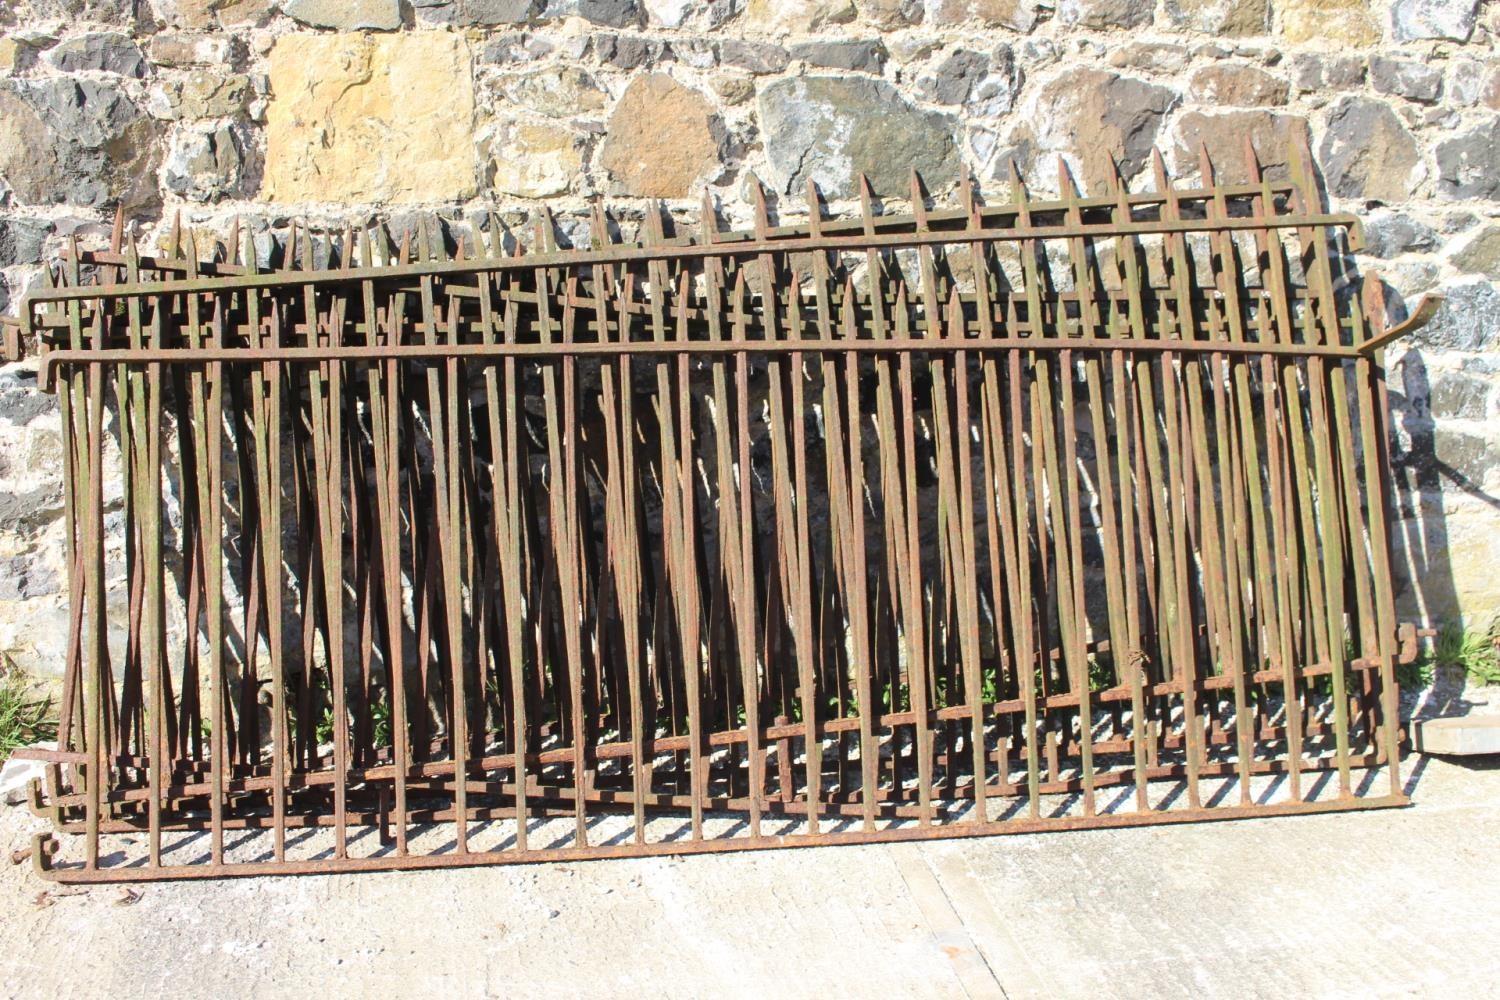 Seven lengths of wrought iron fencing